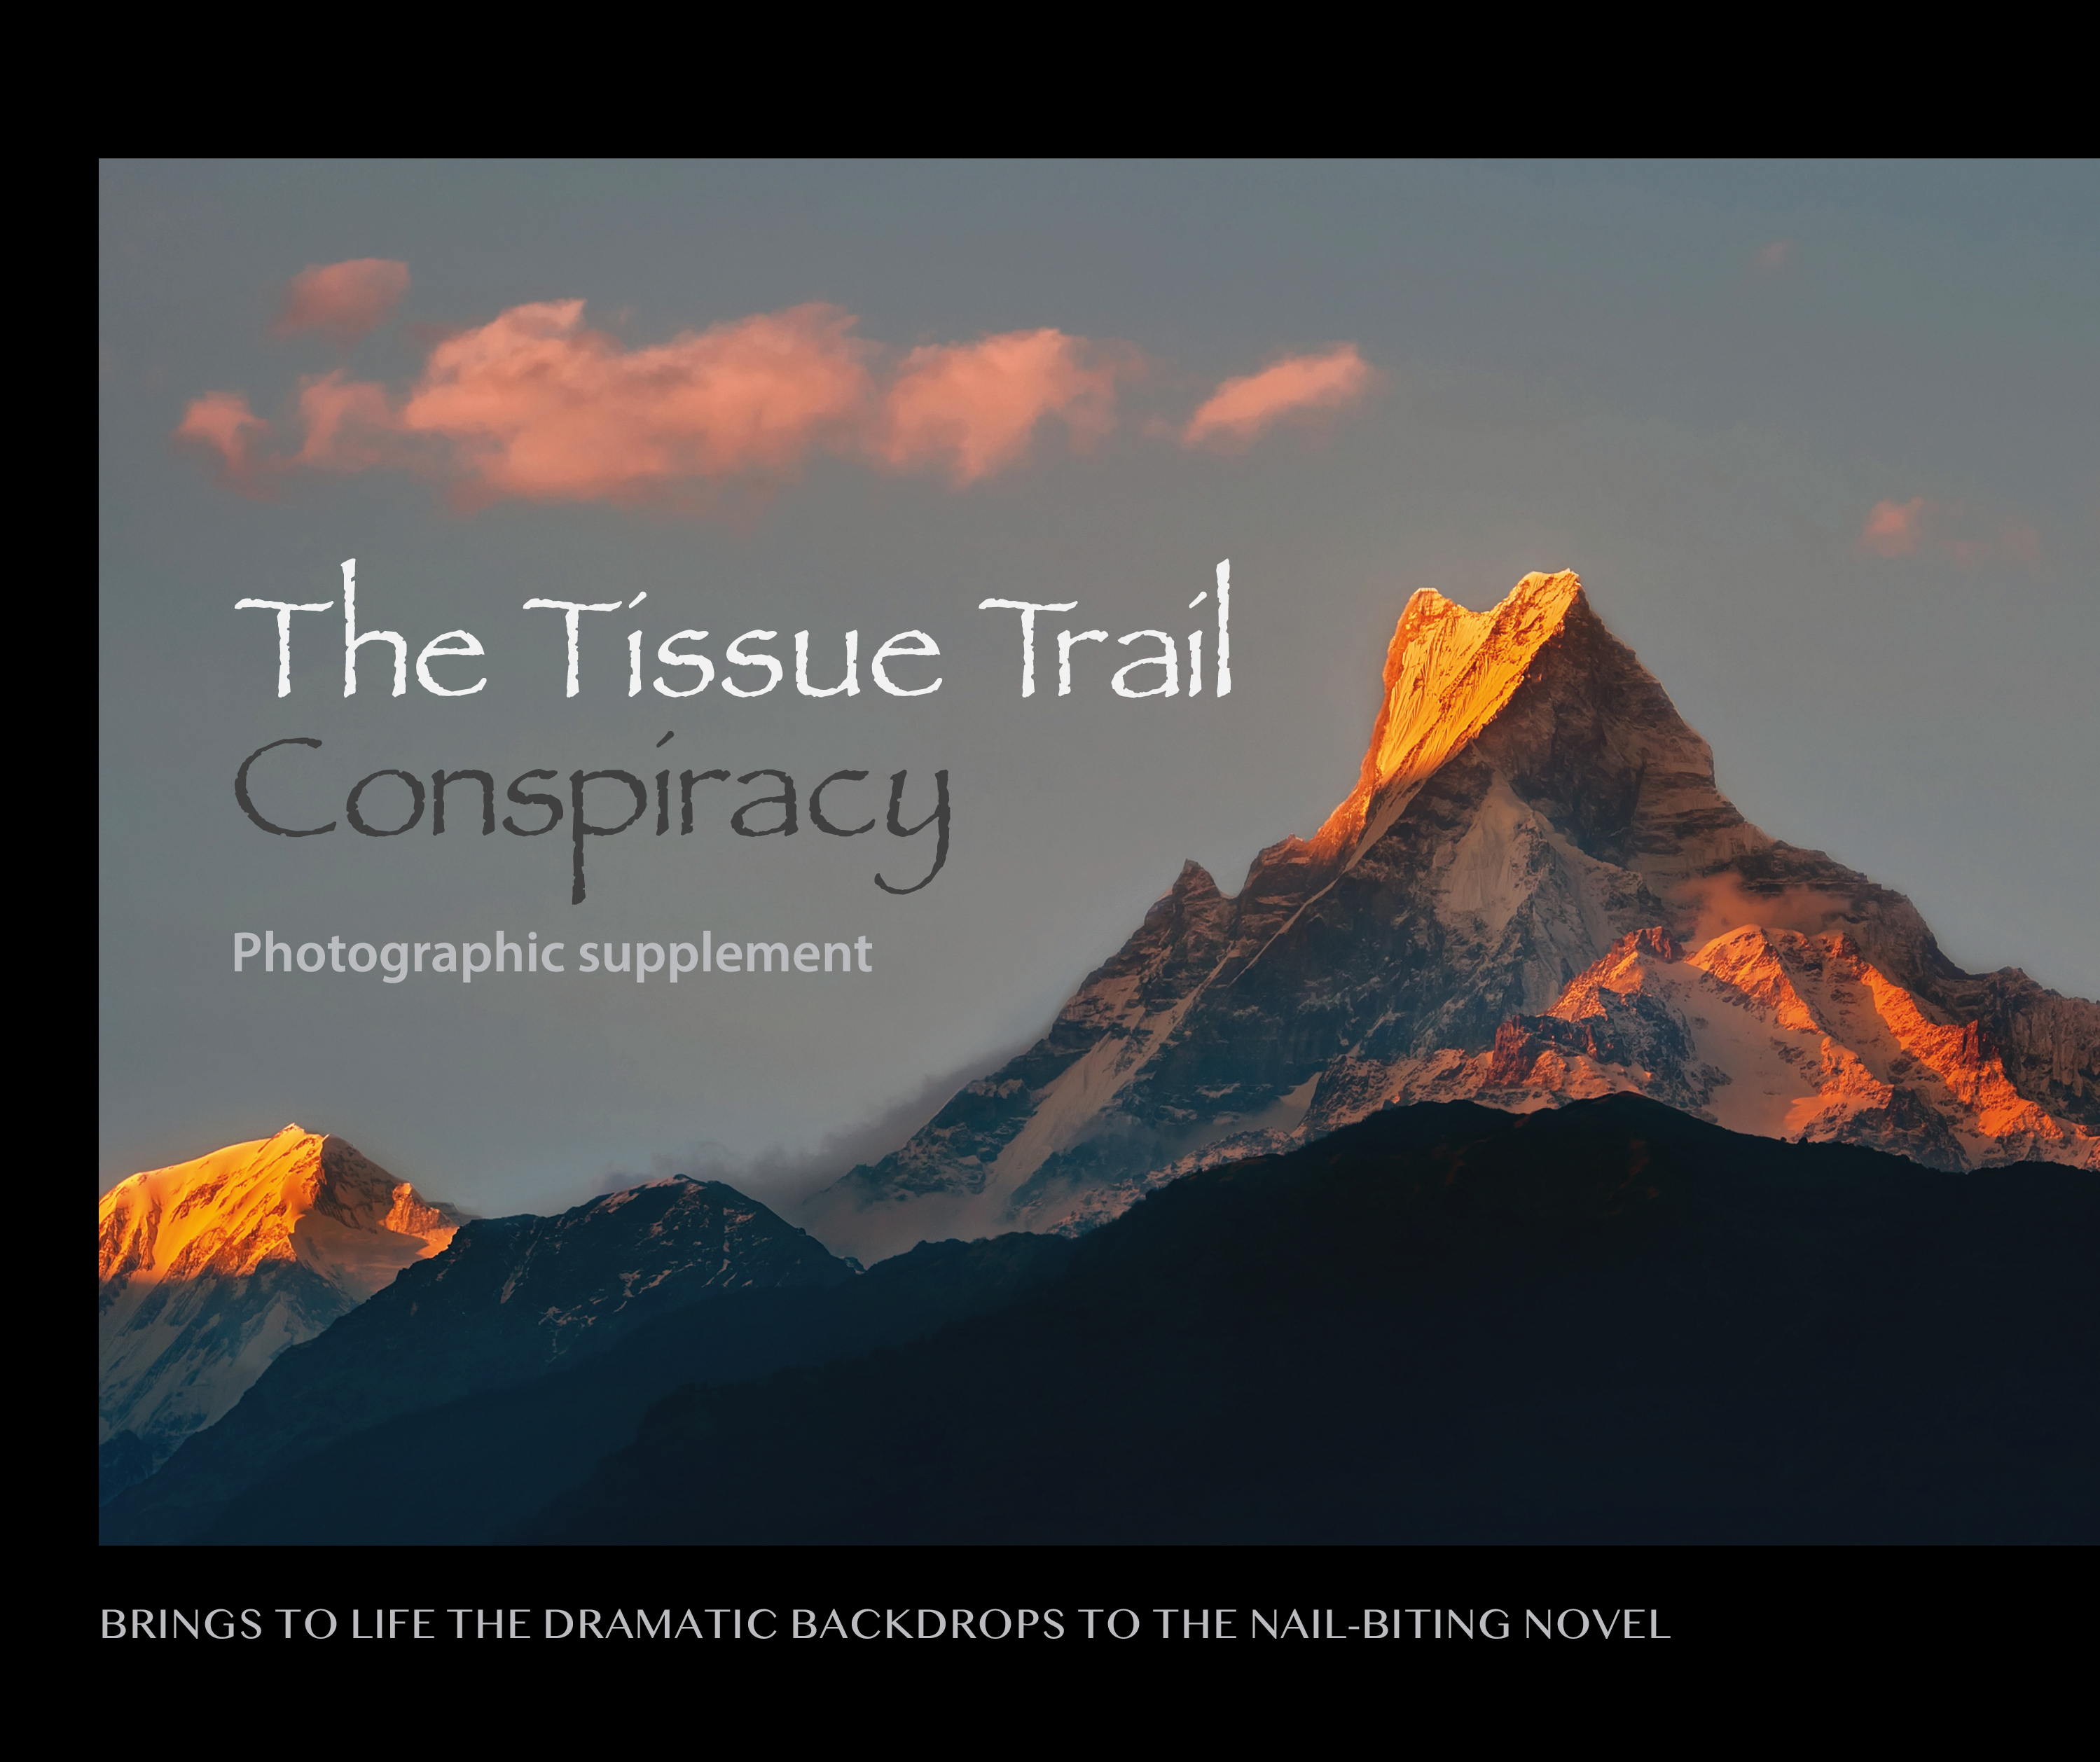 The Tissue Trail Conspiracy Photographic Supplement